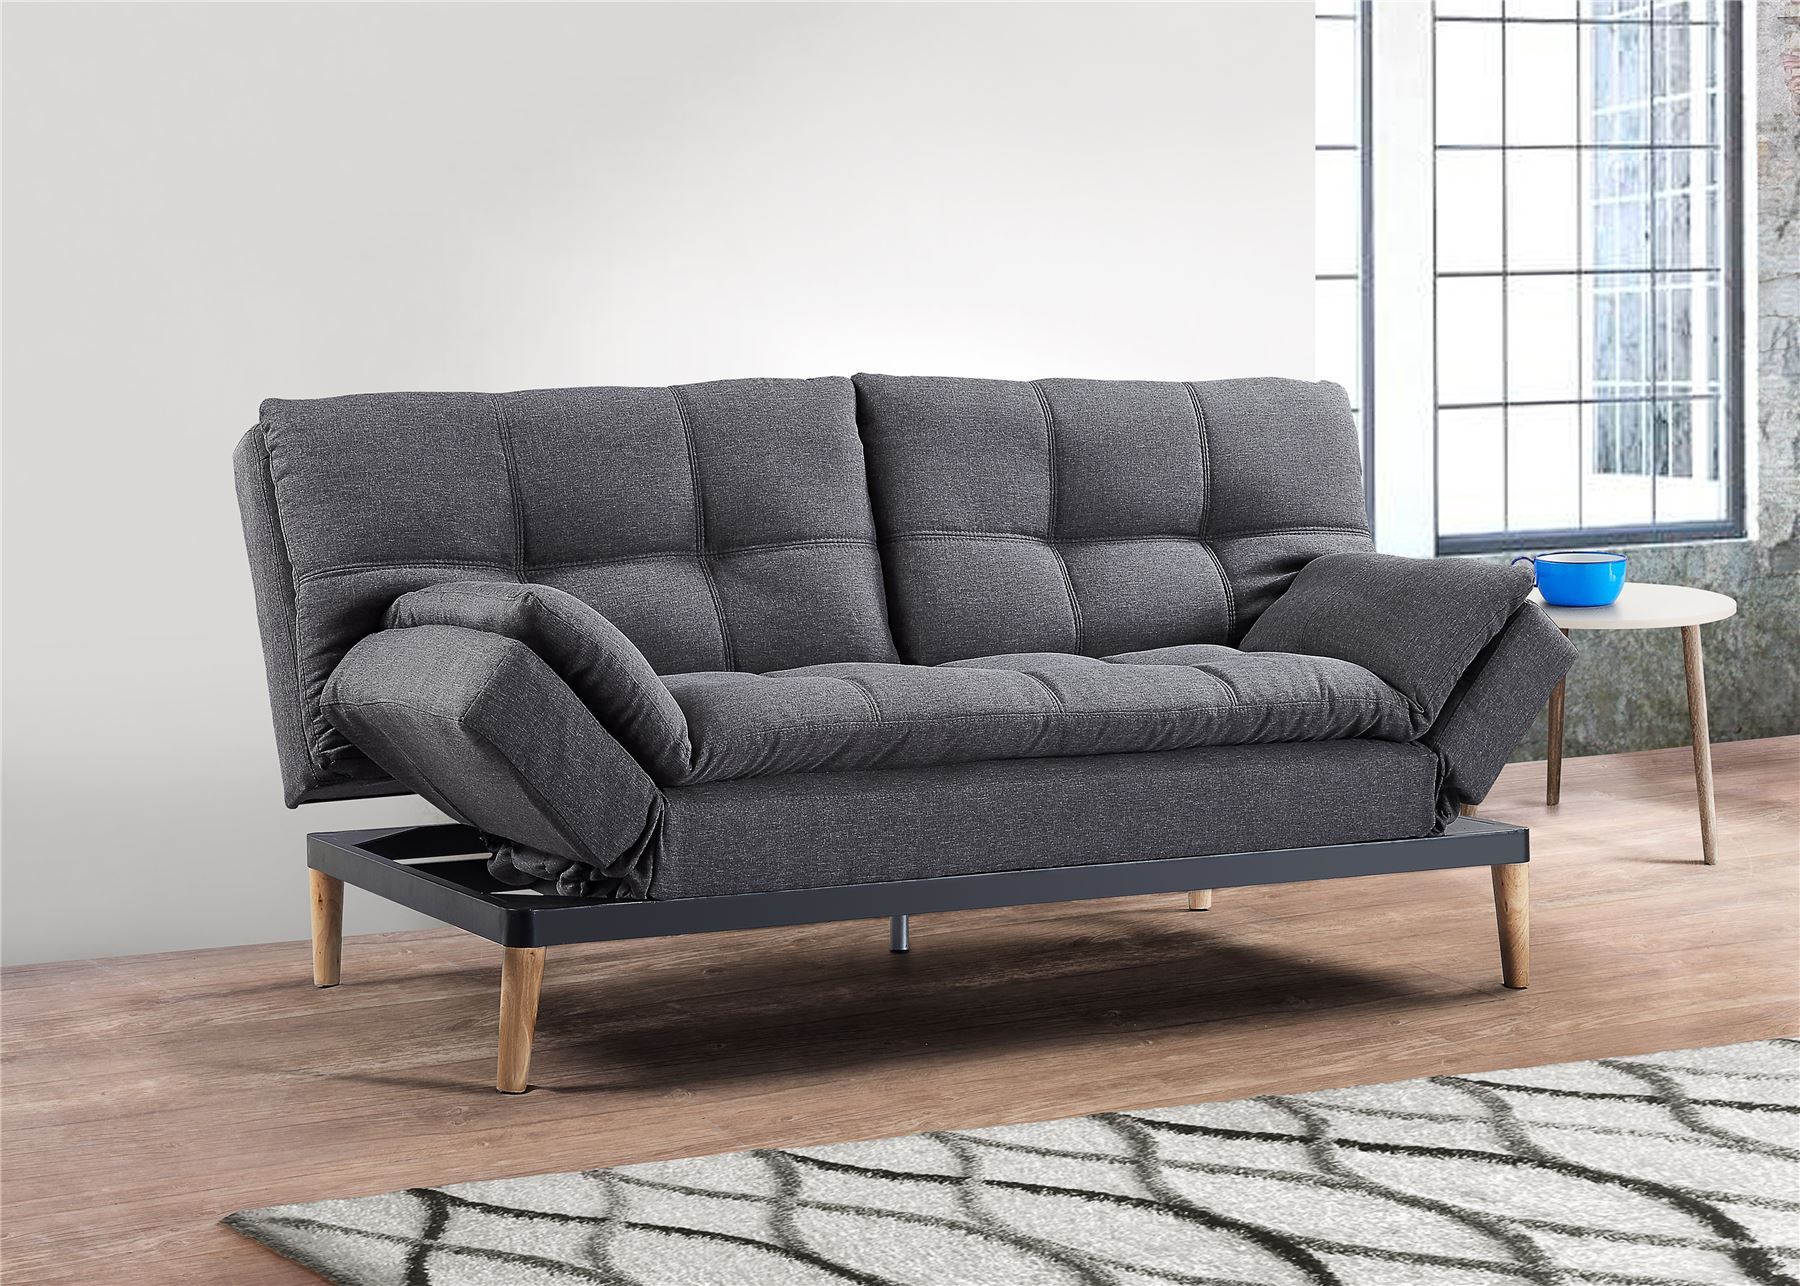 Birlea Squish Sofa Bed 3 Seater Settee Grey Velvet Fabric Scandinavian Retro